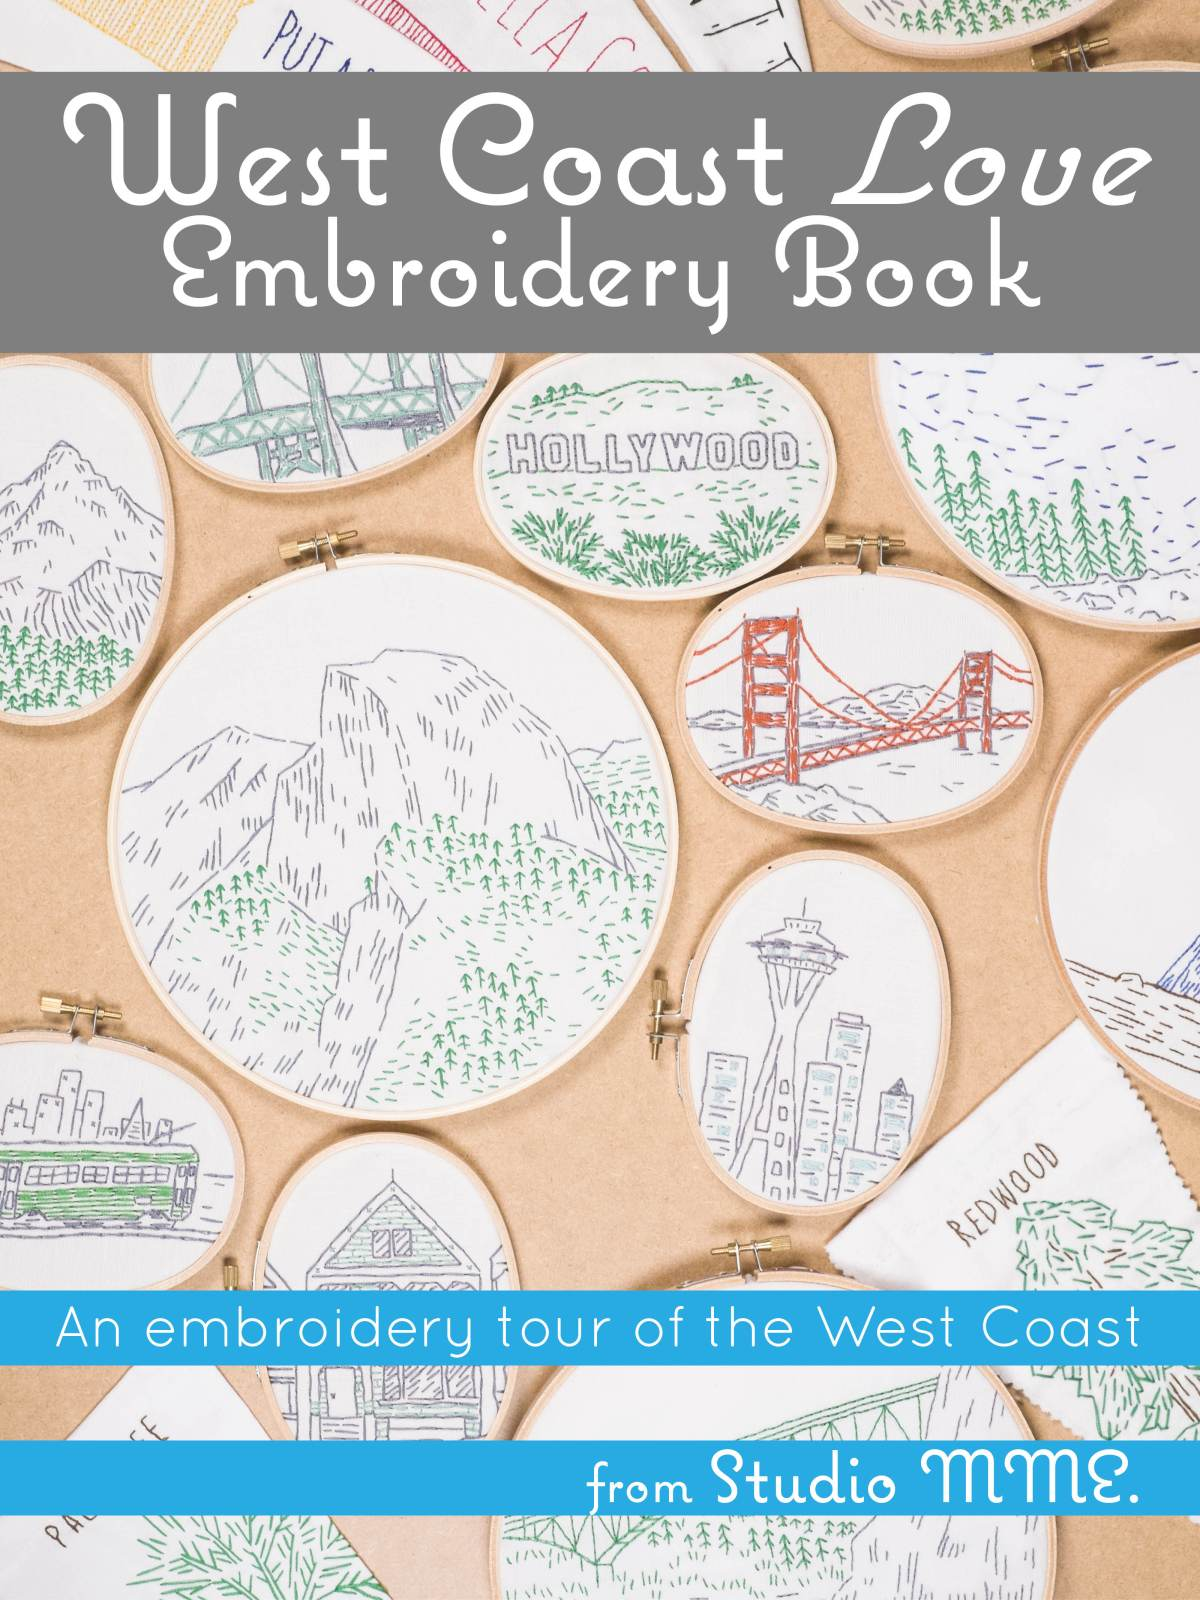 Book Review – West Coast Love by Studio MME